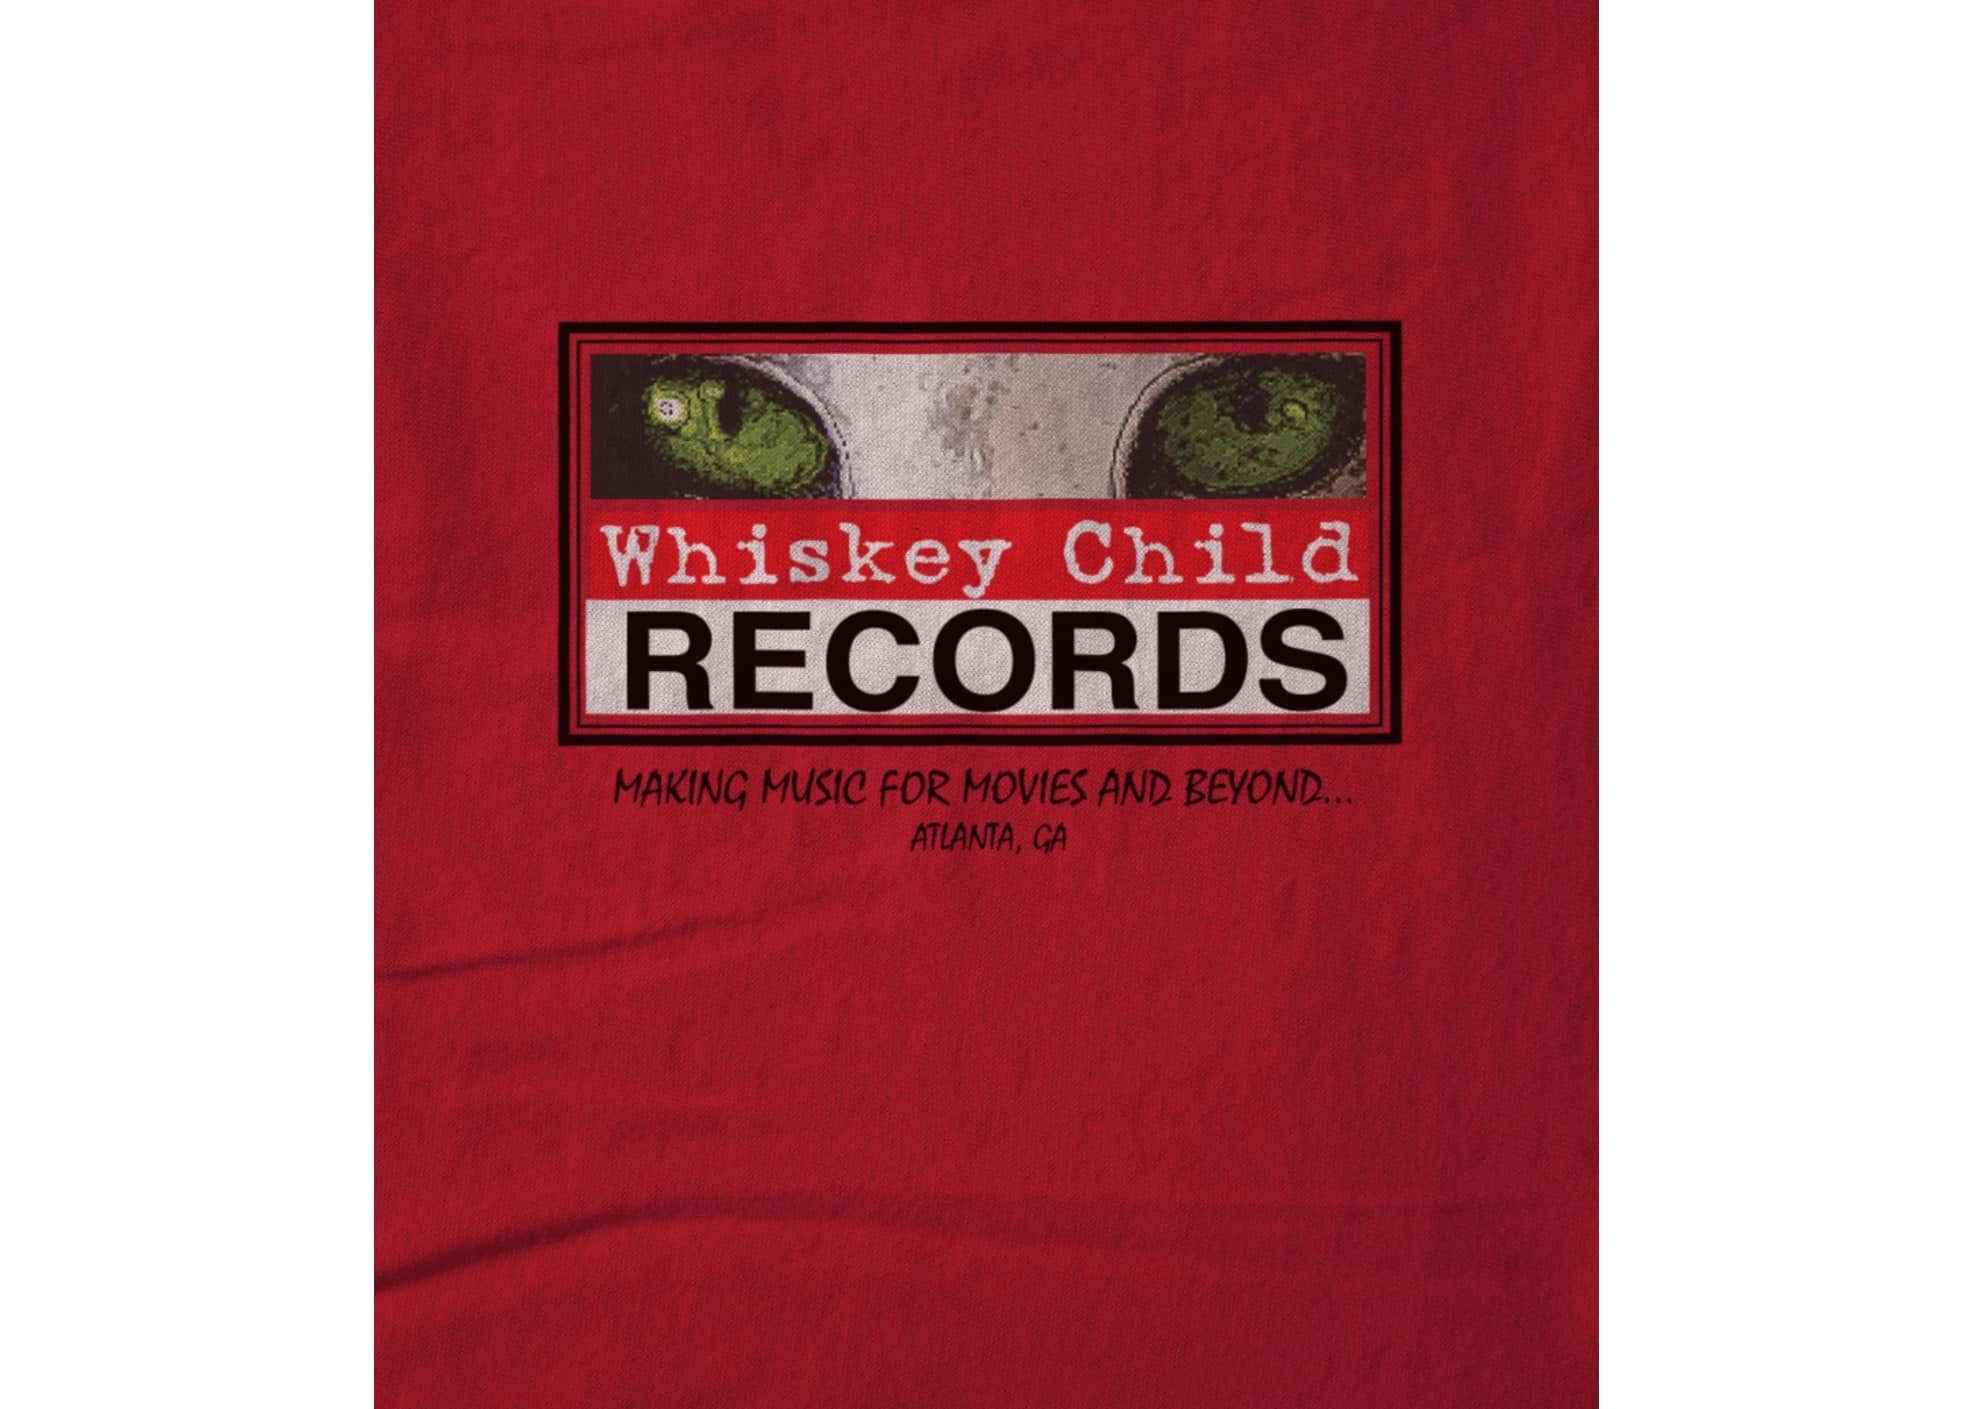 Whiskey child records design by trey mcgriff 1473478283